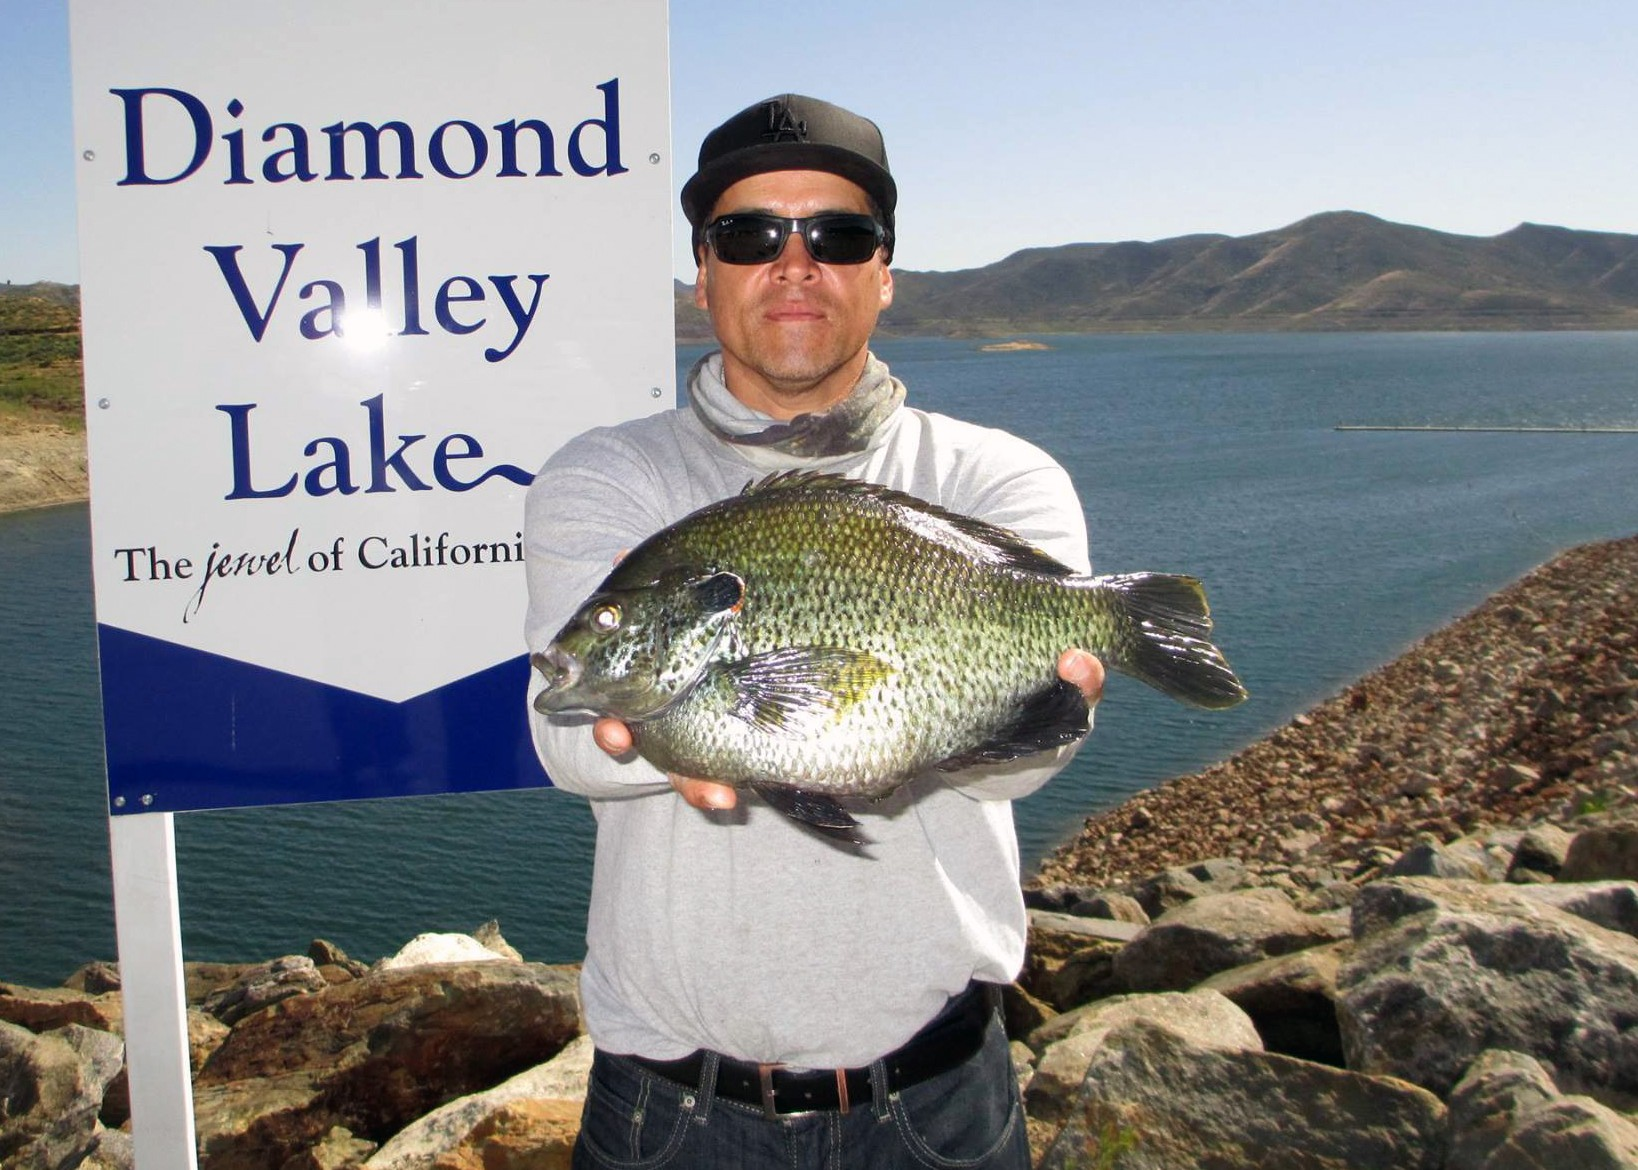 Record redear sunfish caught at diamond valley for Diamond valley fishing report